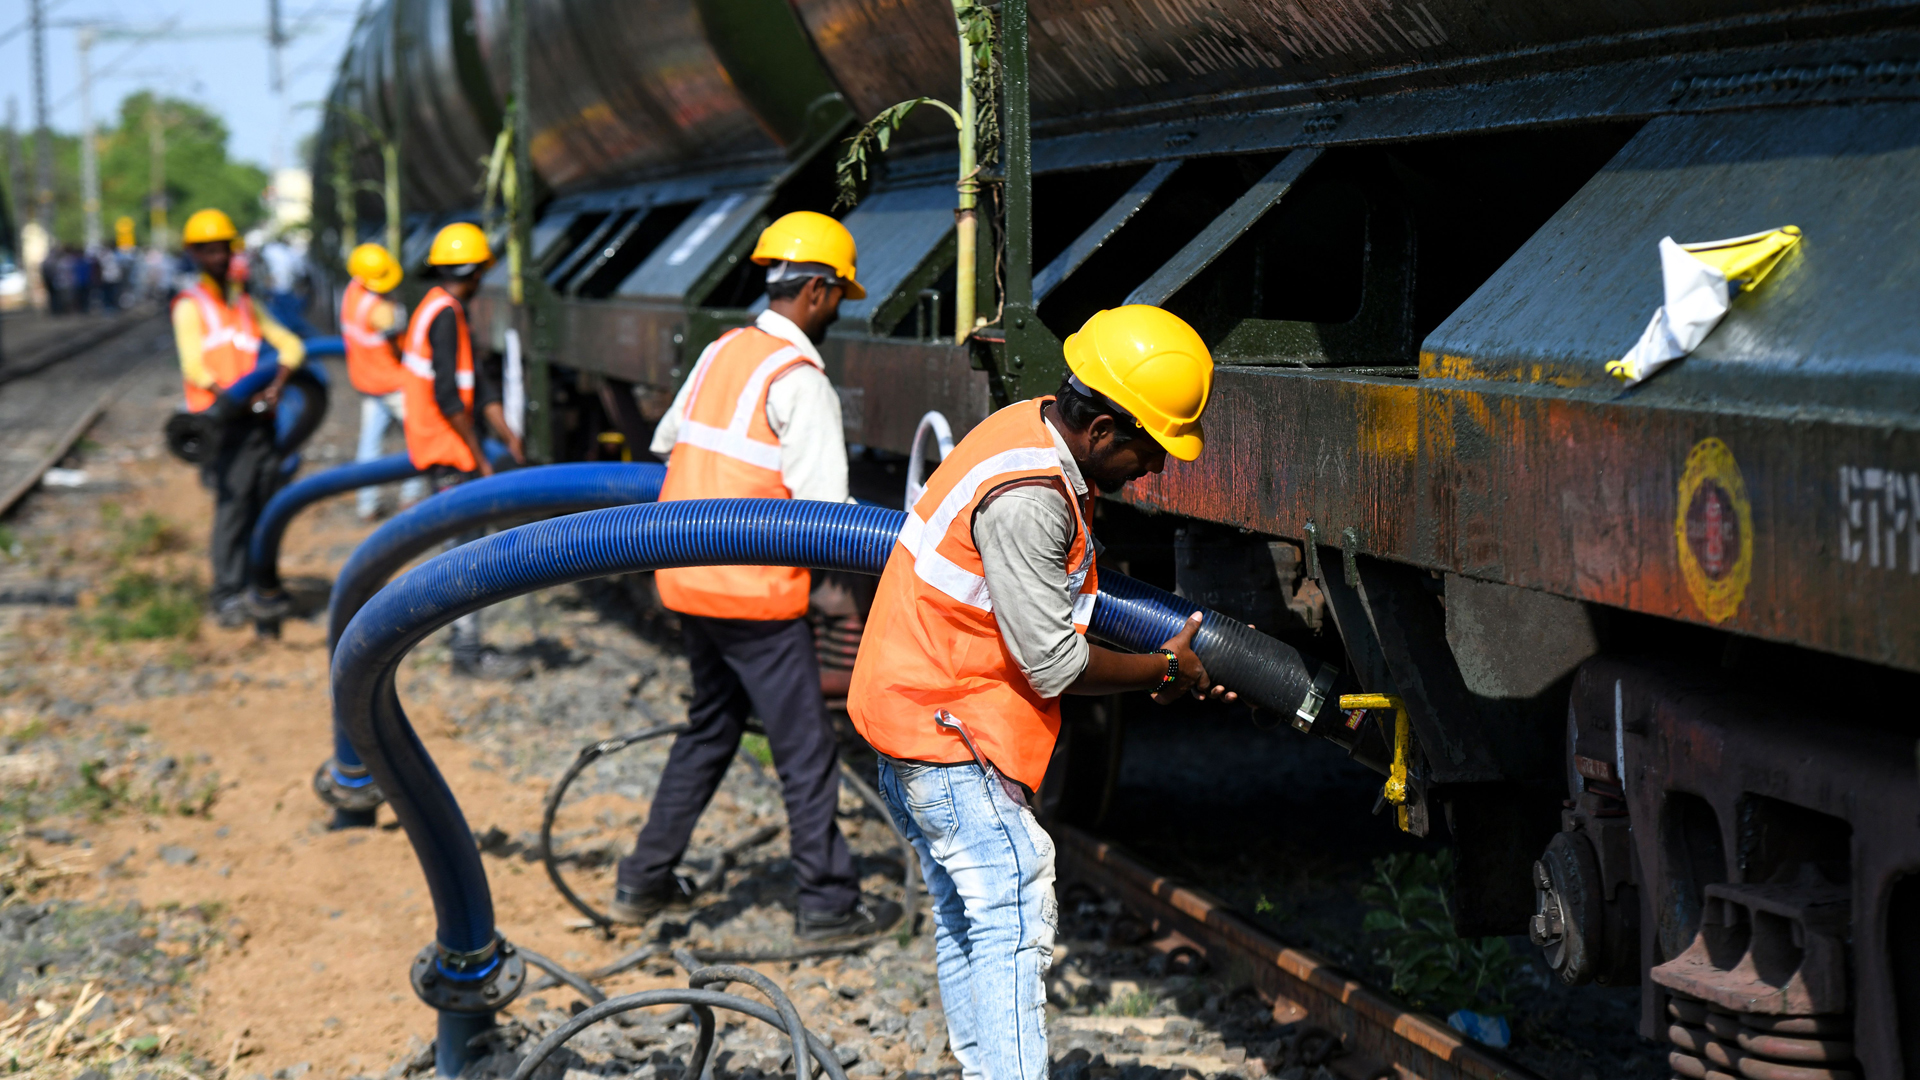 Indian laborers connect pipes to collect water from a special train of 50 wagons carrying liters of water at Villivakkam railway station in Chennai on July 12, 2019.(Credit: Arun Sankar/AFP/Getty Images)